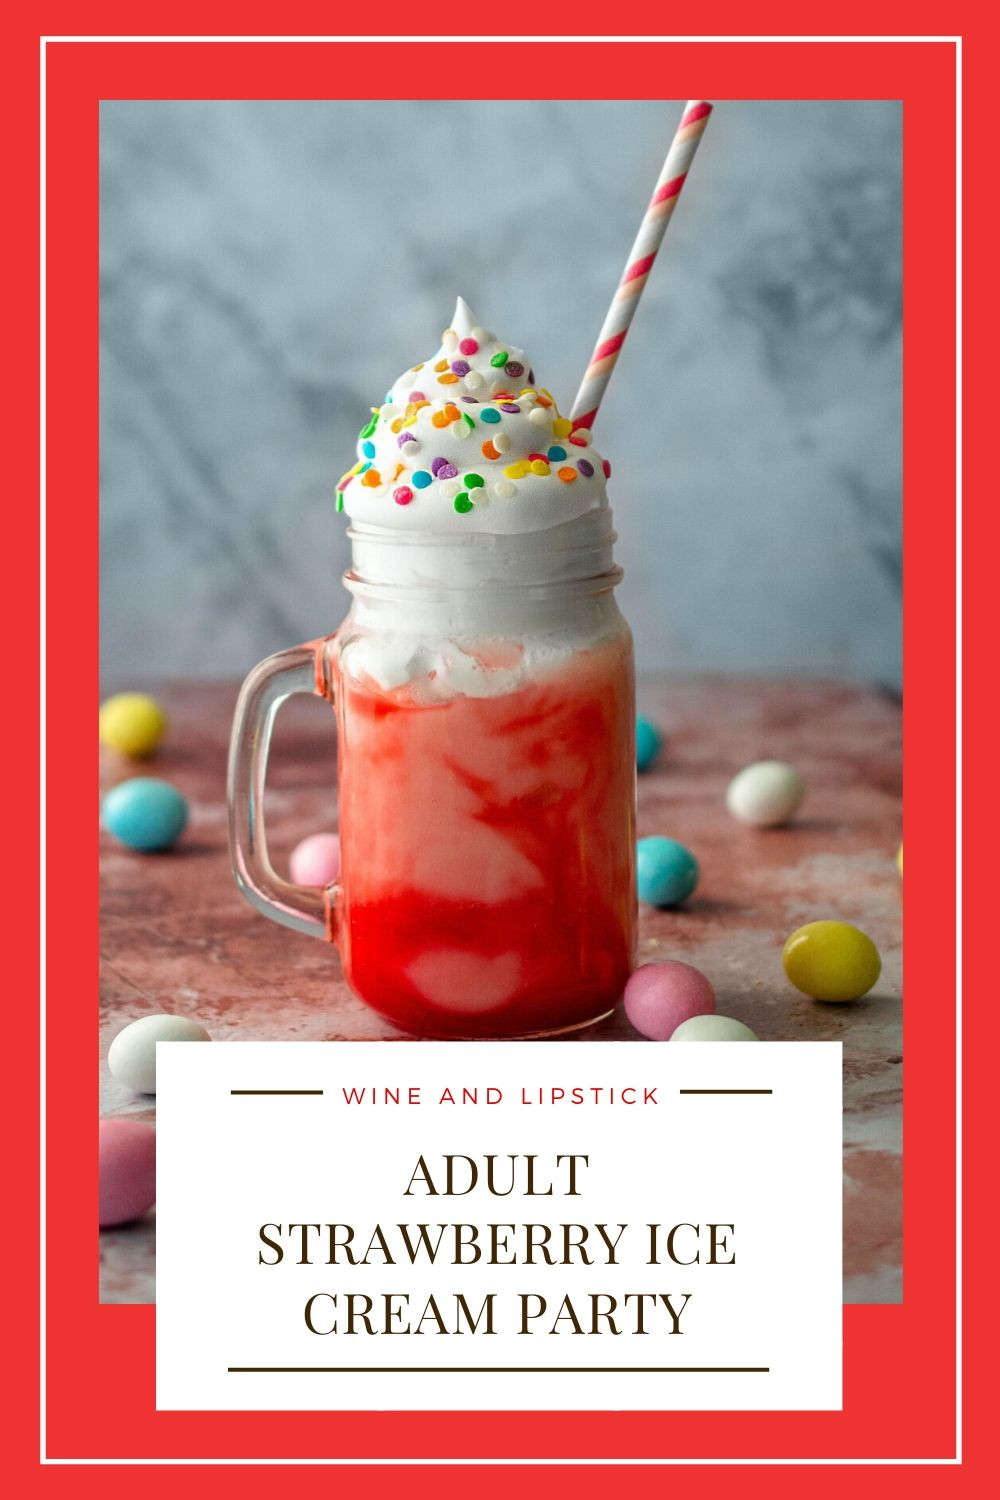 Adult Strawberry Ice Cream Party {Summer Alcoholic Drink}